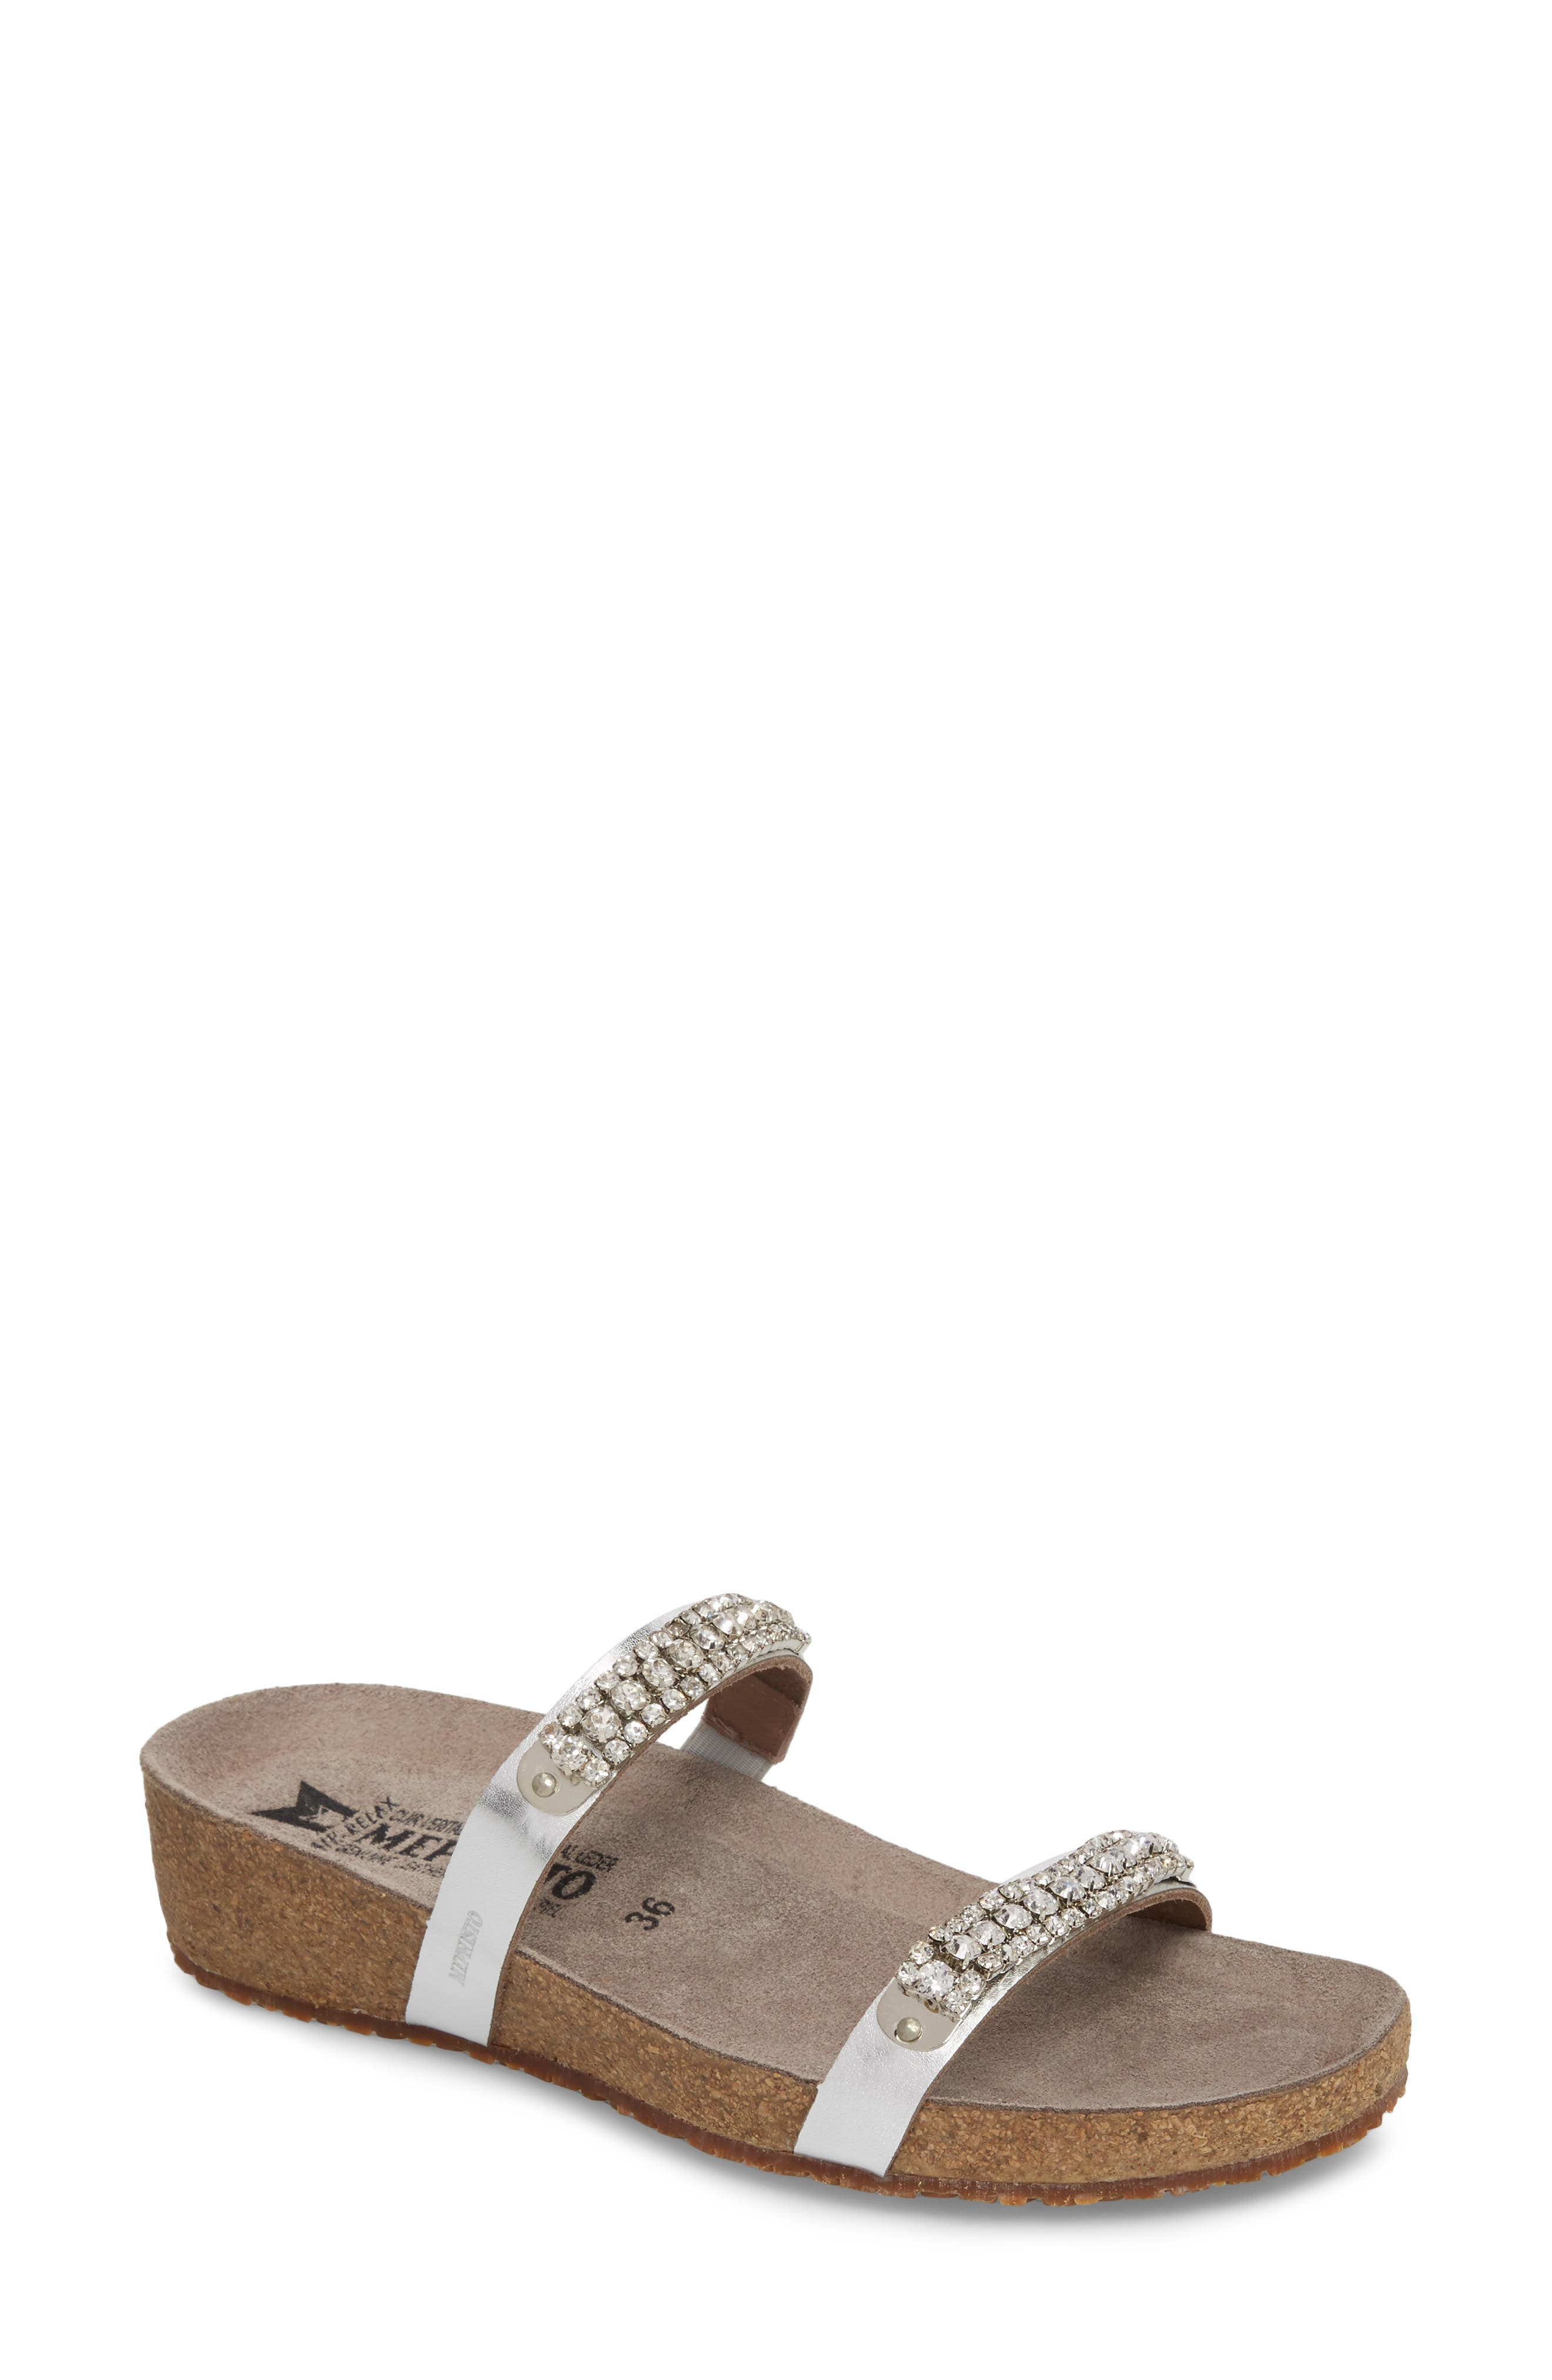 'Ivana' Crystal Embellished Slide Sandal,                             Main thumbnail 1, color,                             082